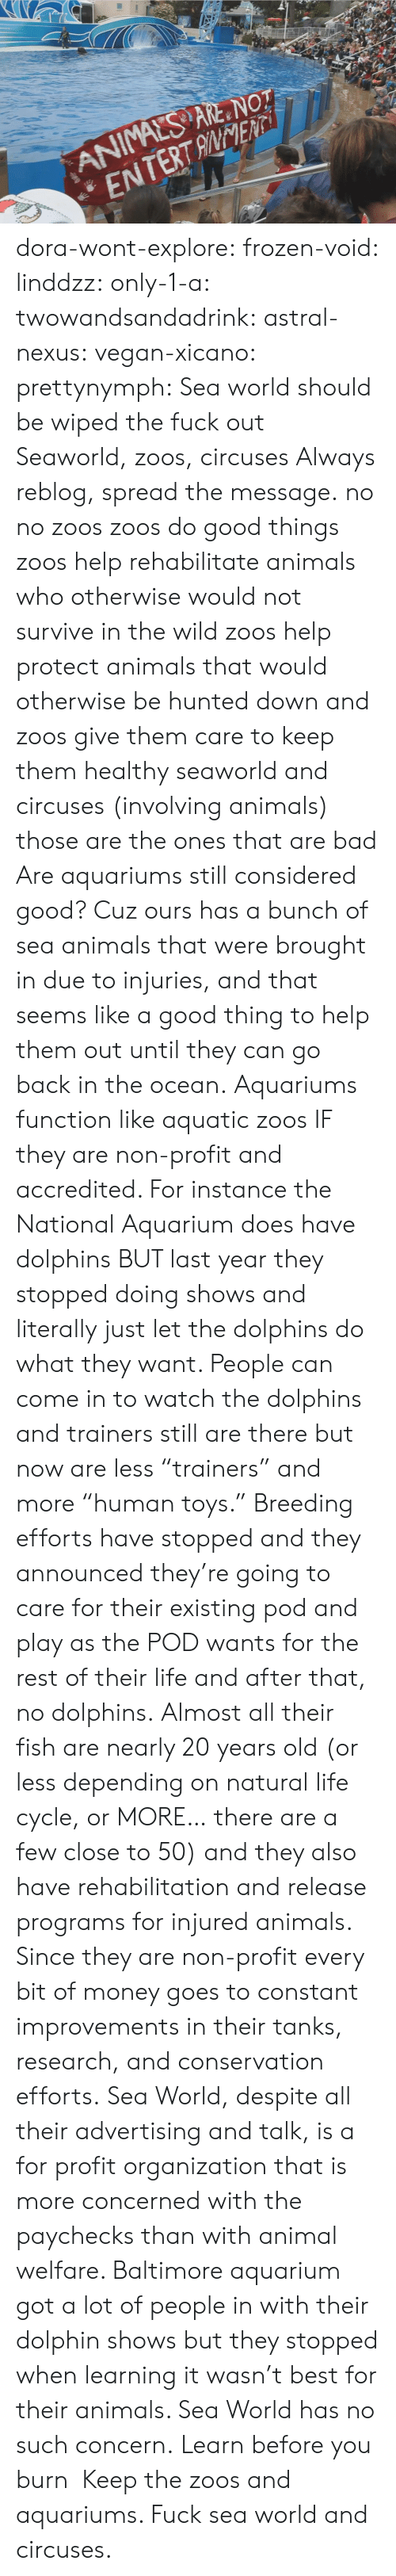 "tanks: ANIMALS ARE NOT  ENTERTANENTi dora-wont-explore:   frozen-void:  linddzz:  only-1-a:  twowandsandadrink:  astral-nexus:  vegan-xicano:  prettynymph:  Sea world should be wiped the fuck out  Seaworld, zoos, circuses  Always reblog, spread the message.  no no zoos zoos do good things zoos help rehabilitate animals who otherwise would not survive in the wild zoos help protect animals that would otherwise be hunted down and zoos give them care to keep them healthy seaworld and circuses (involving animals) those are the ones that are bad  Are aquariums still considered good? Cuz ours has a bunch of sea animals that were brought in due to injuries, and that seems like a good thing to help them out until they can go back in the ocean.  Aquariums function like aquatic zoos IF they are non-profit and accredited. For instance the National Aquarium does have dolphins BUT last year they stopped doing shows and literally just let the dolphins do what they want. People can come in to watch the dolphins and trainers still are there but now are less ""trainers"" and more ""human toys."" Breeding efforts have stopped and they announced they're going to care for their existing pod and play as the POD wants for the rest of their life and after that, no dolphins. Almost all their fish are nearly 20 years old (or less depending on natural life cycle, or MORE… there are a few close to 50) and they also have rehabilitation and release programs for injured animals. Since they are non-profit every bit of money goes to constant improvements in their tanks, research, and conservation efforts. Sea World, despite all their advertising and talk, is a for profit organization that is more concerned with the paychecks than with animal welfare. Baltimore aquarium got a lot of people in with their dolphin shows but they stopped when learning it wasn't best for their animals. Sea World has no such concern.  Learn before you burn   Keep the zoos and aquariums. Fuck sea world and circuses."